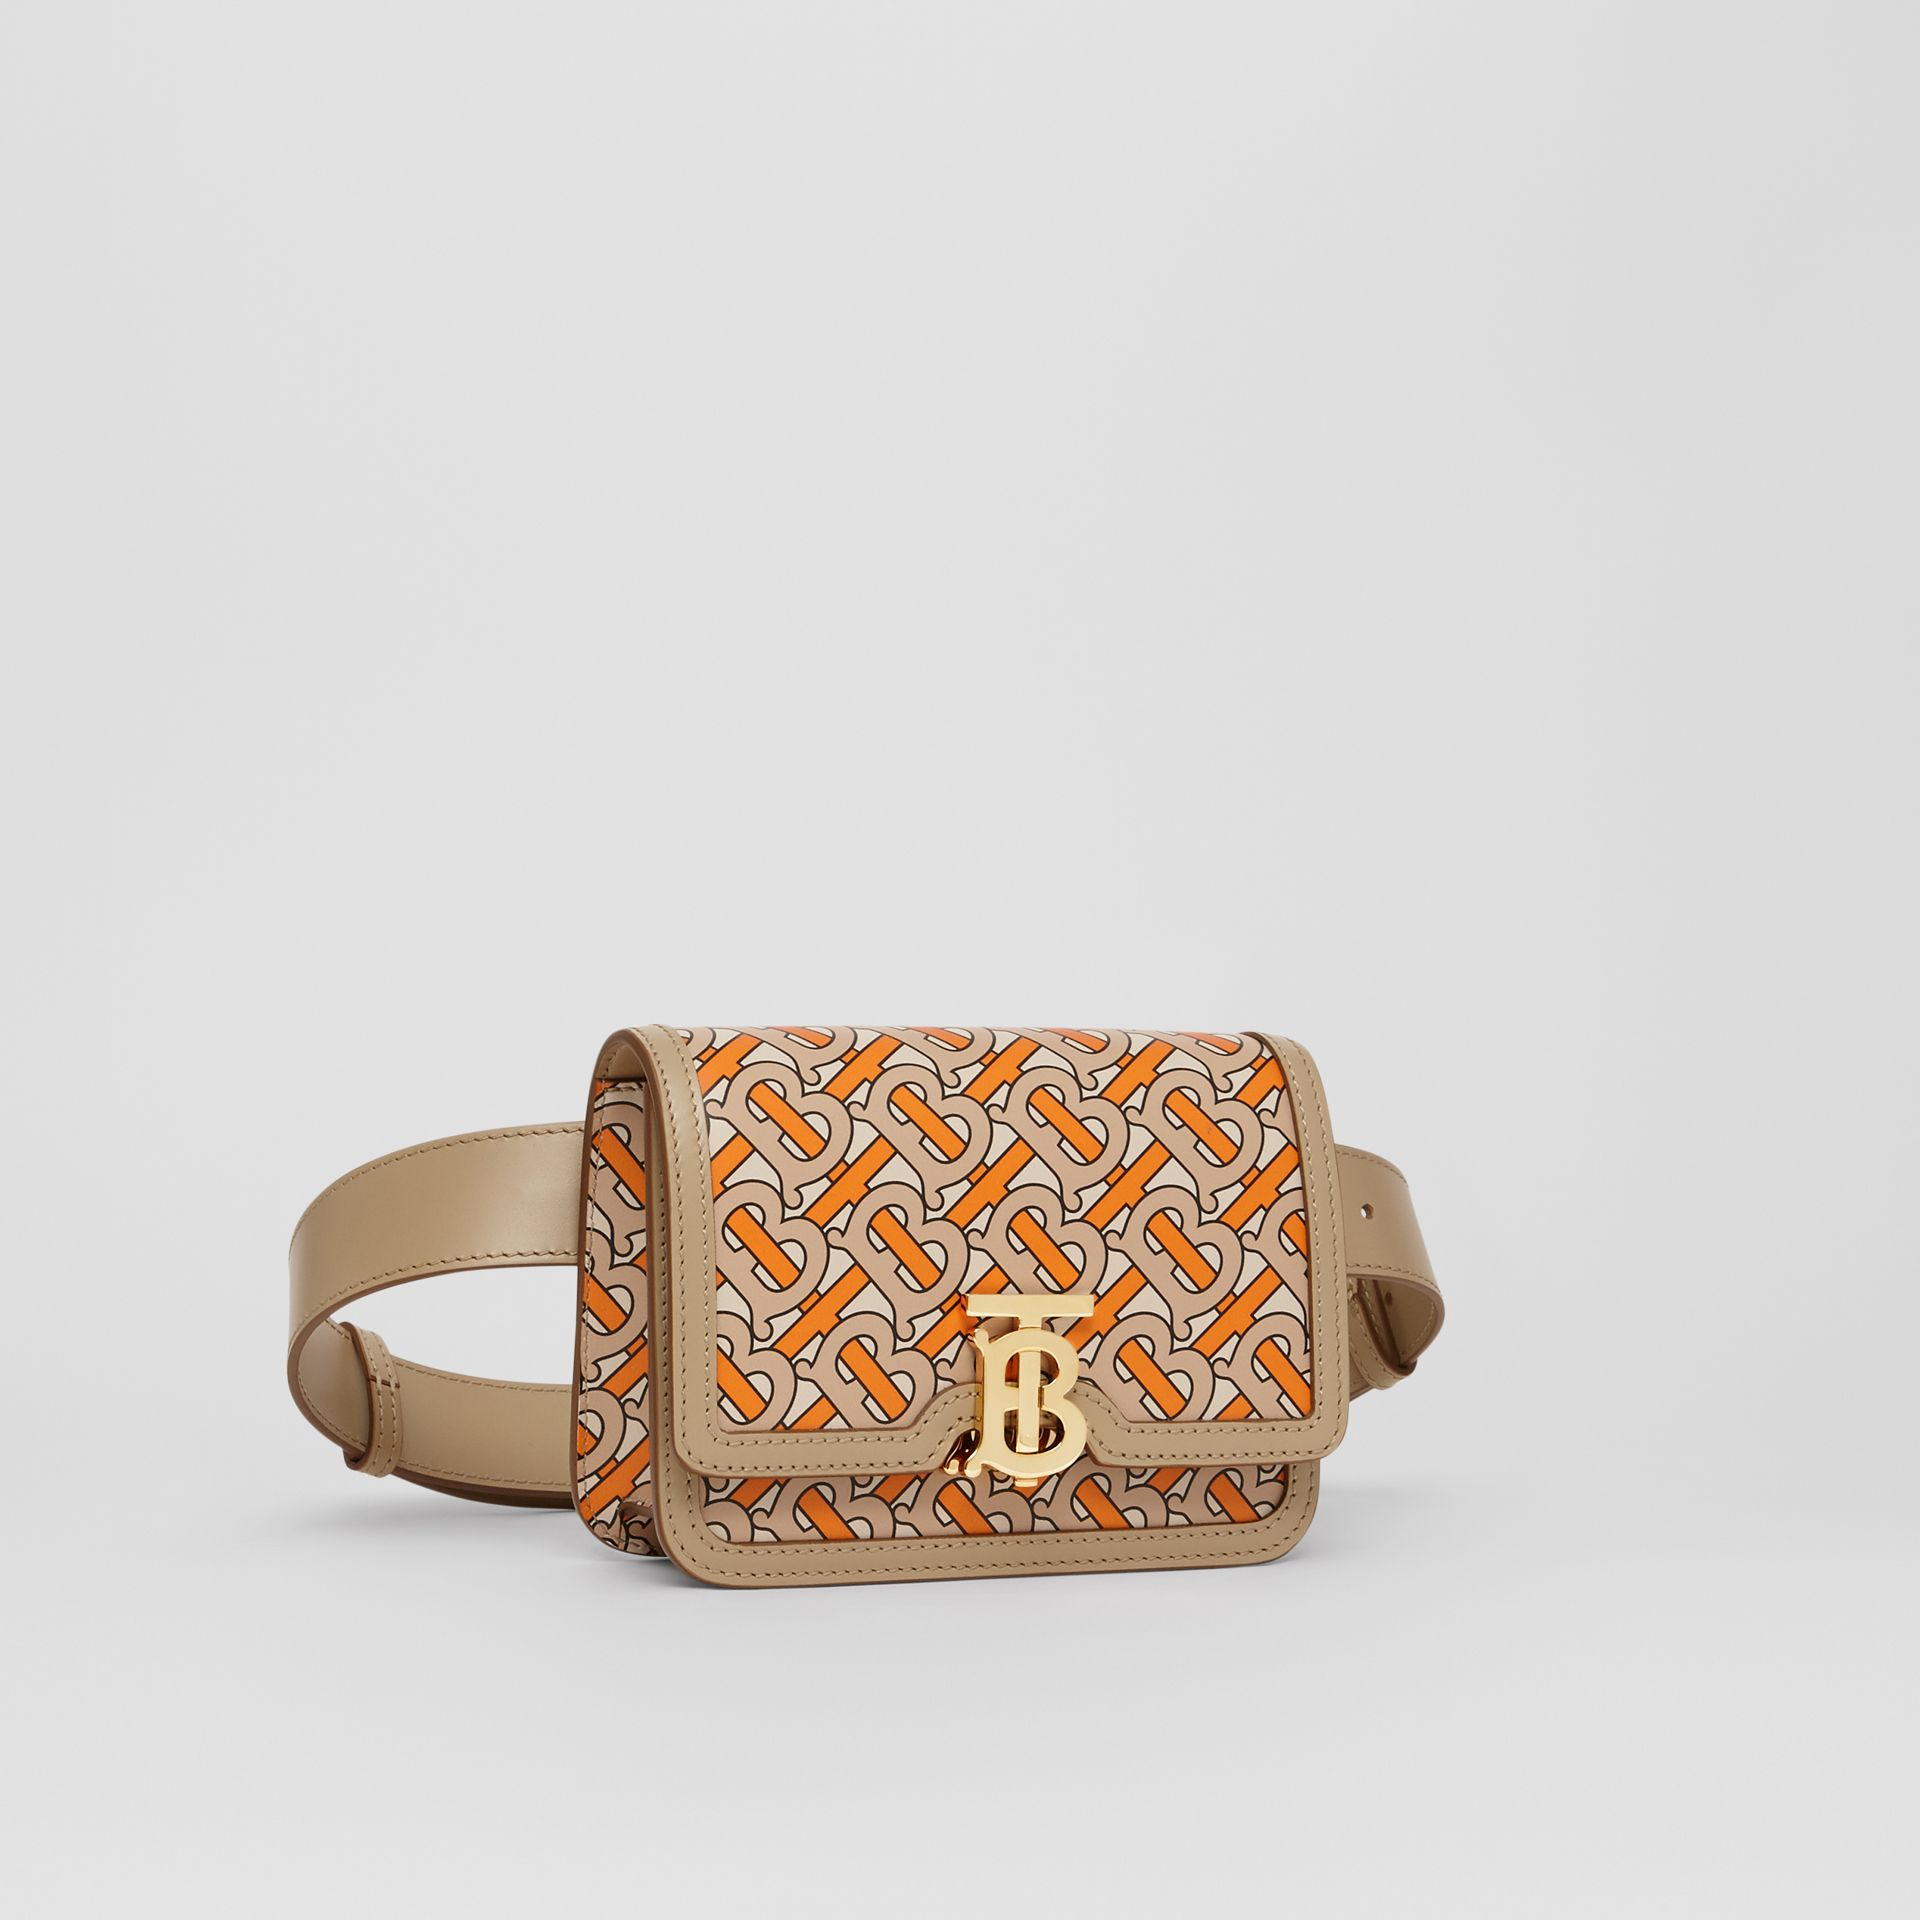 Belted Monogram Print Leather TB Bag in Bright Orange - Women | Burberry - gallery image 5